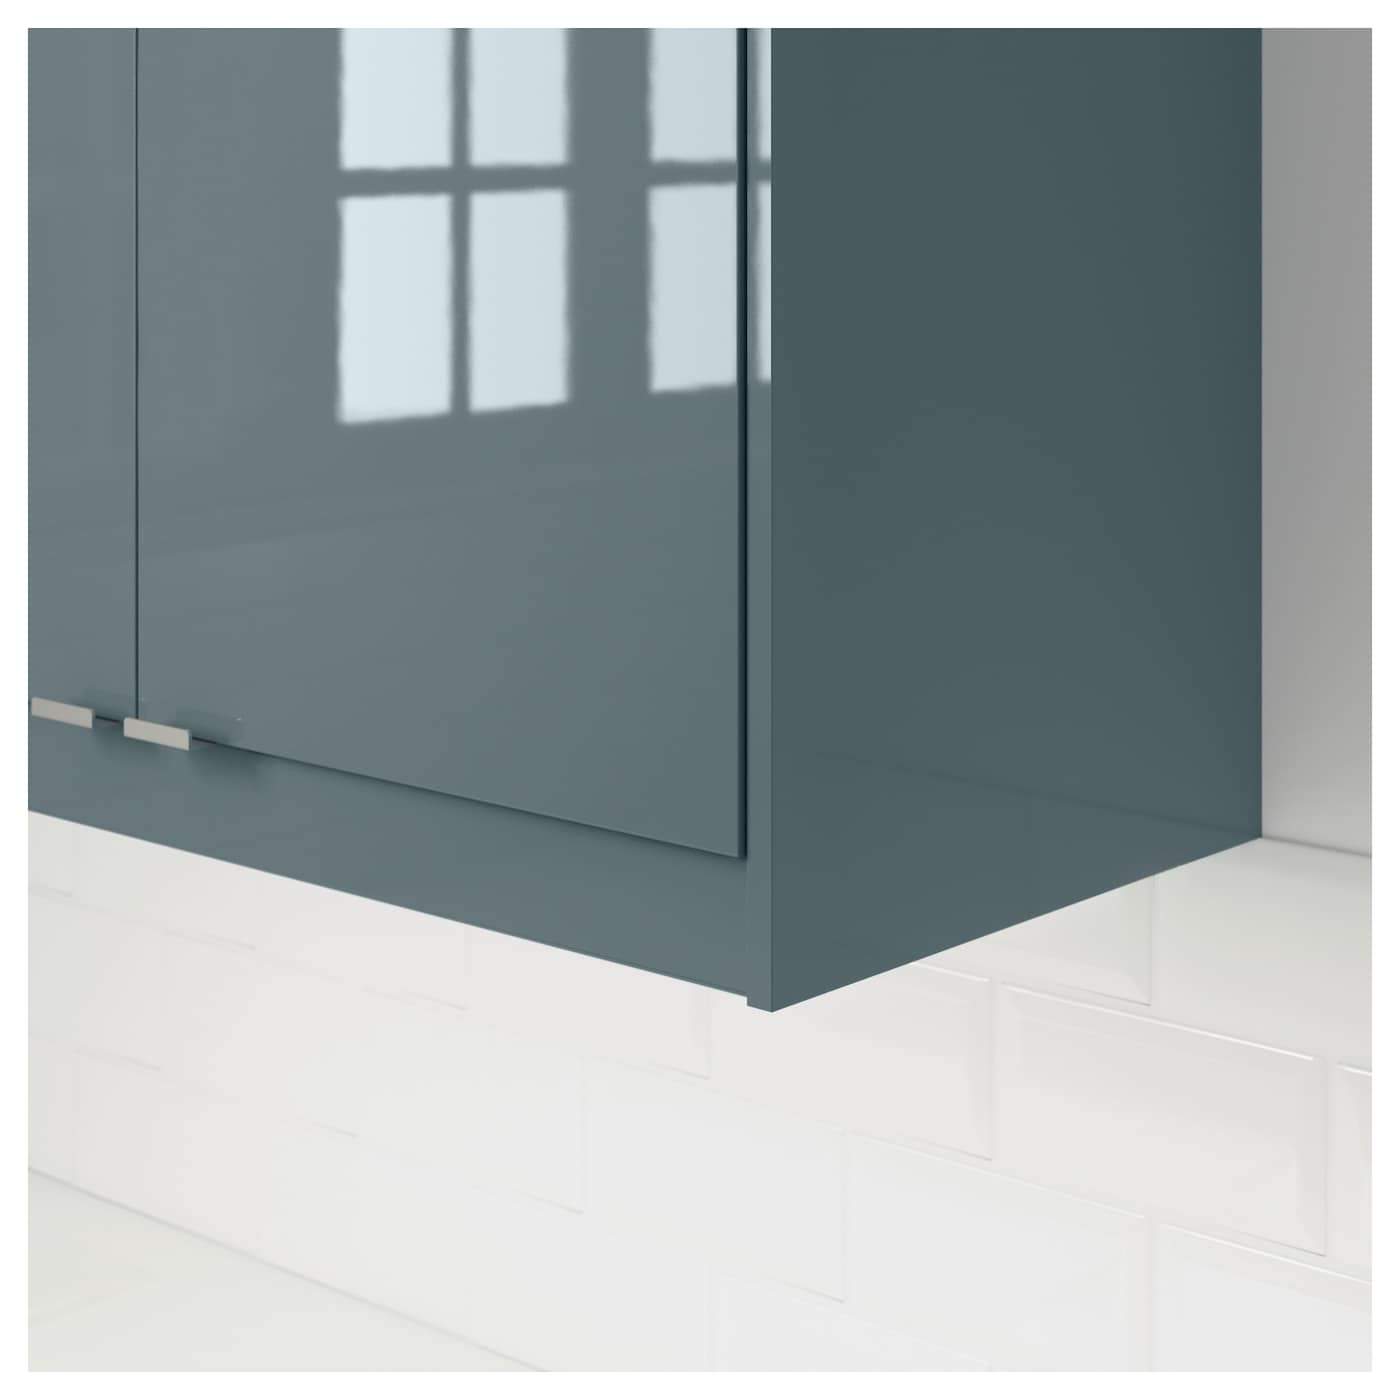 IKEA KALLARP rounded deco strip/moulding Covered with high-gloss foil; gives an easy care finish.